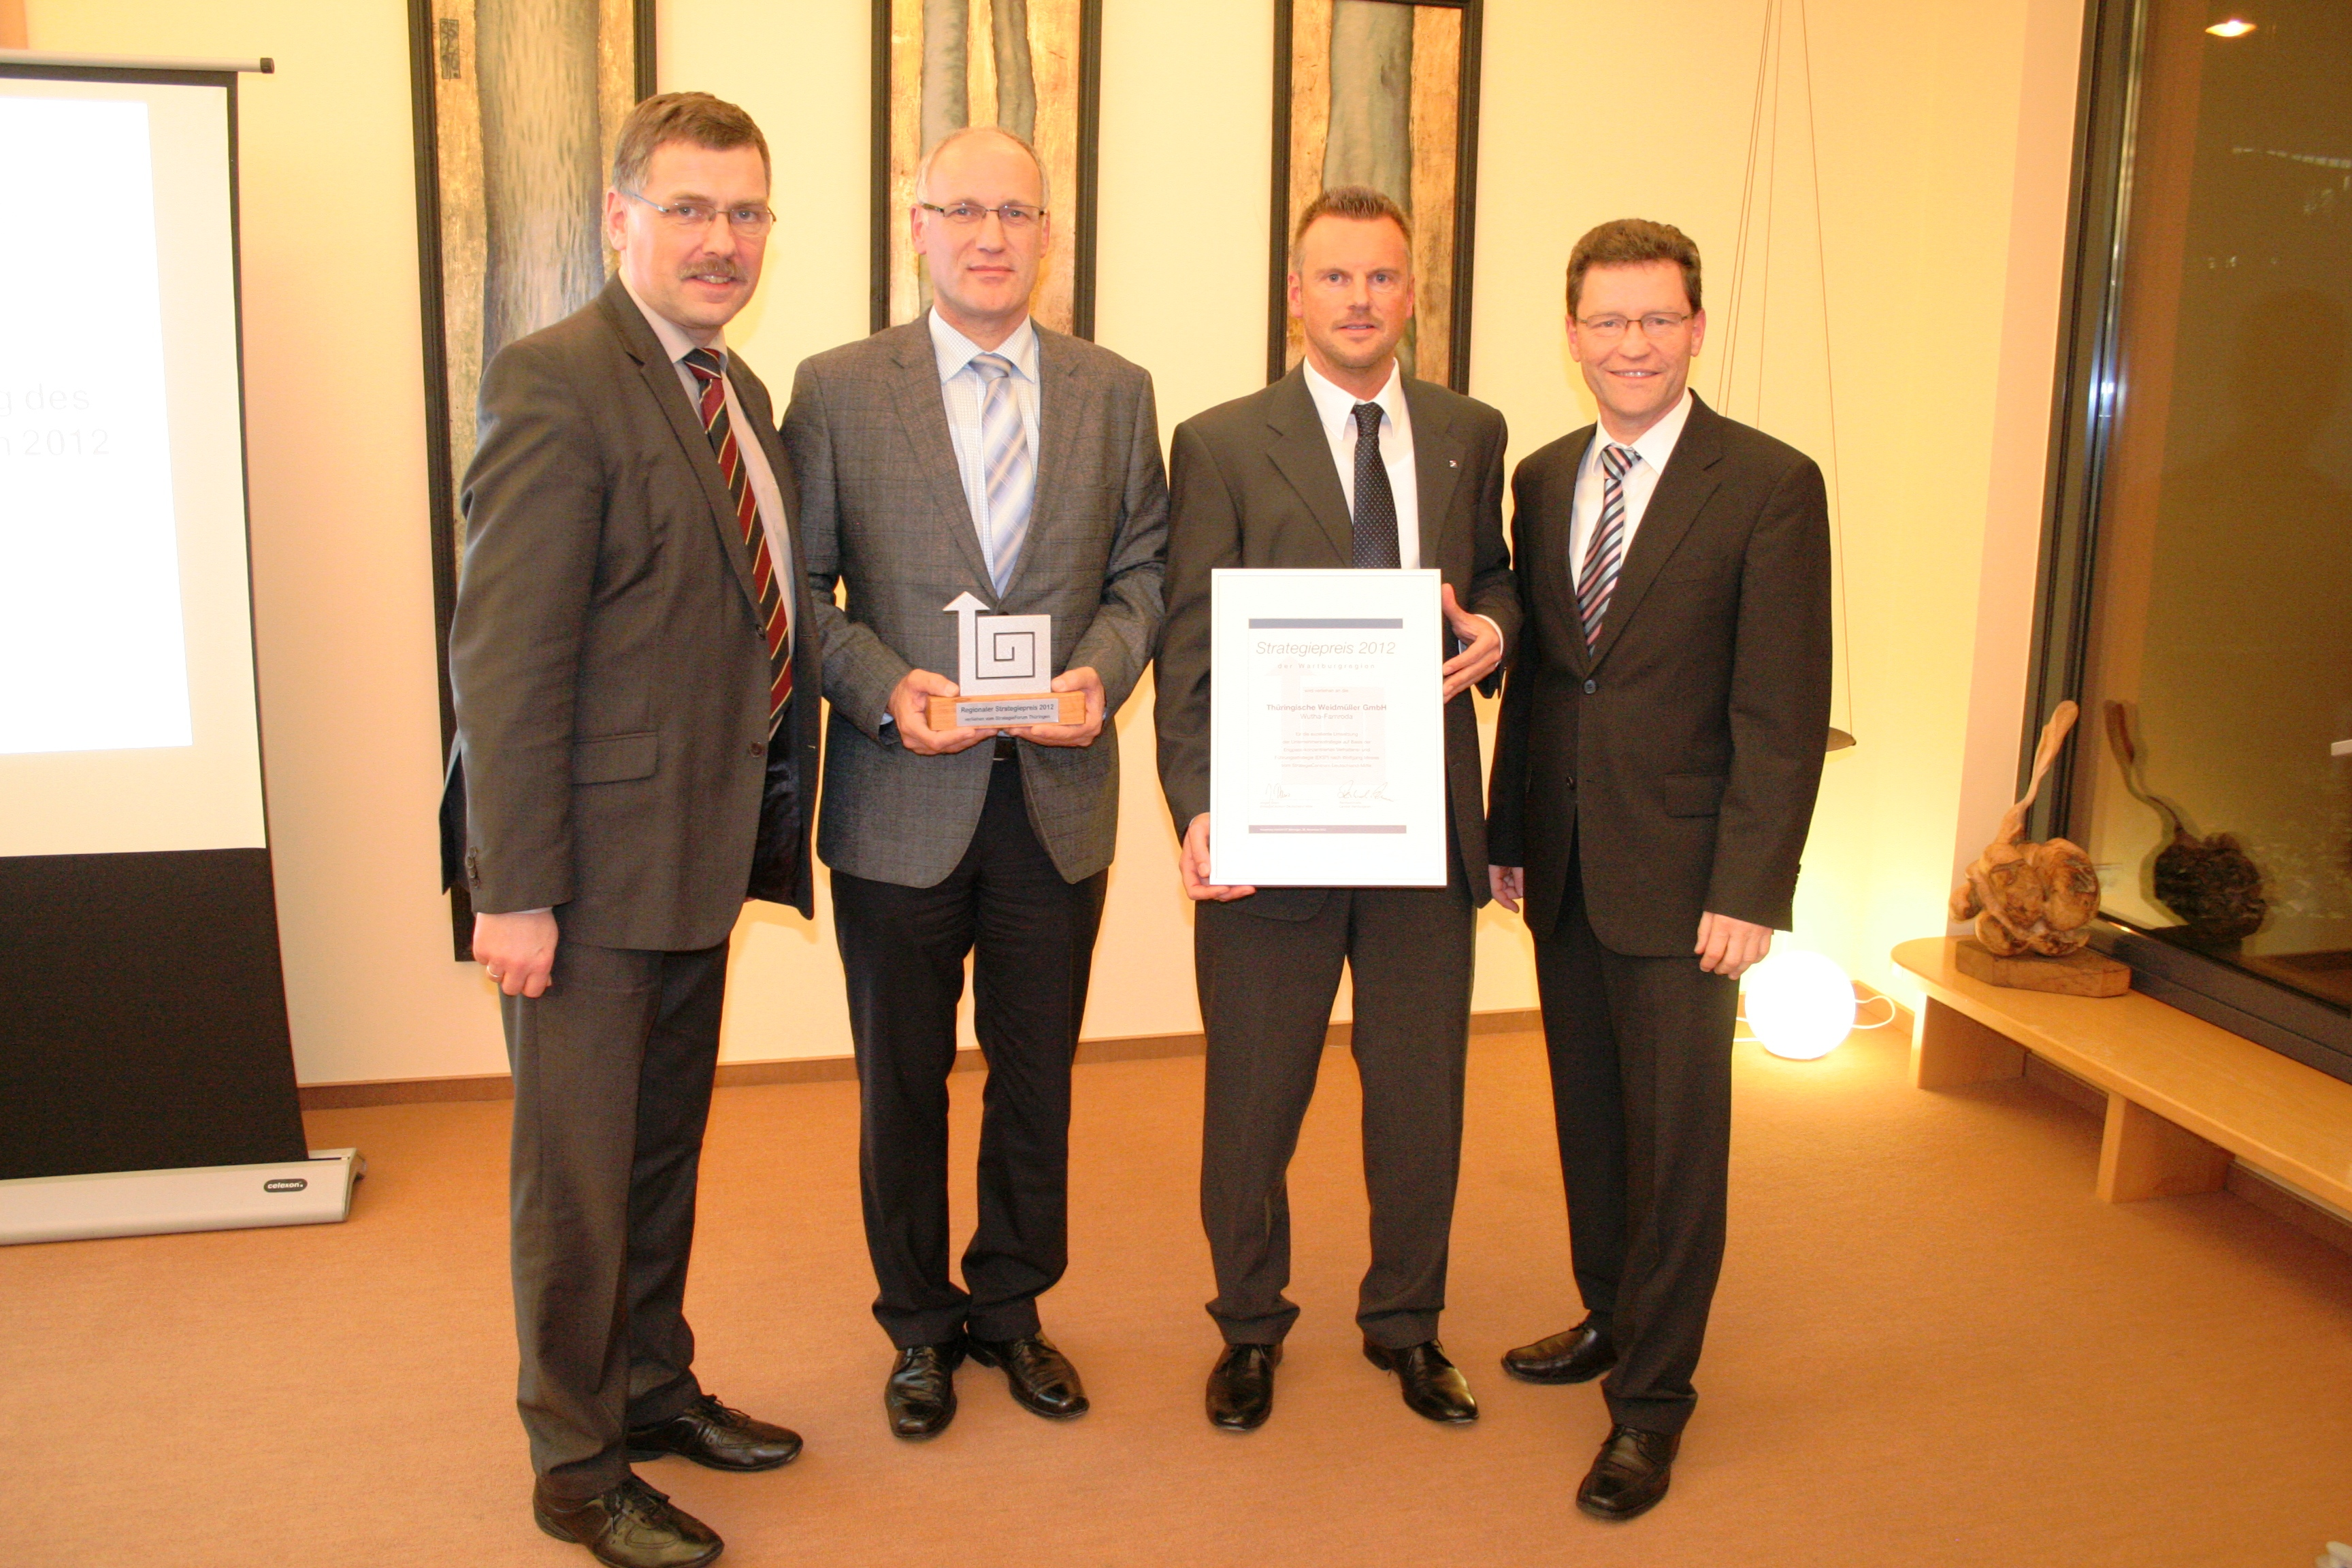 Strategiepreis der Wartburgregion 2013